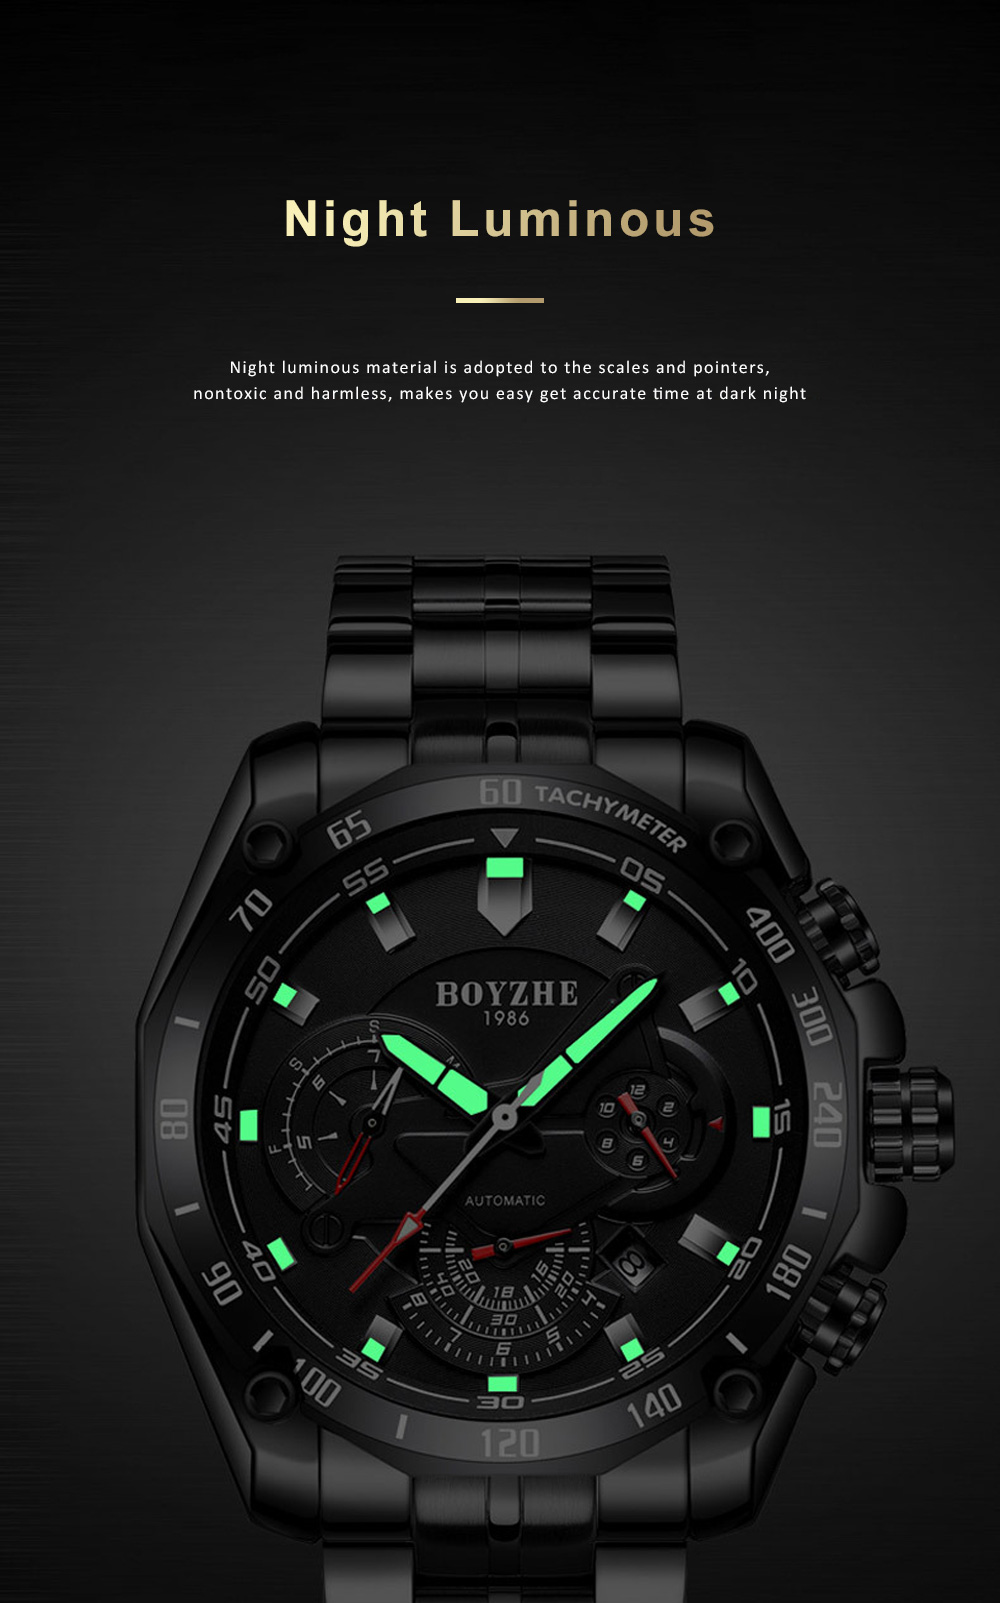 Automatic Mechanical Watch for Businessman, Stainless Steel Watchband Fashion Watch, Waterproof Sports Wrist Watch 5